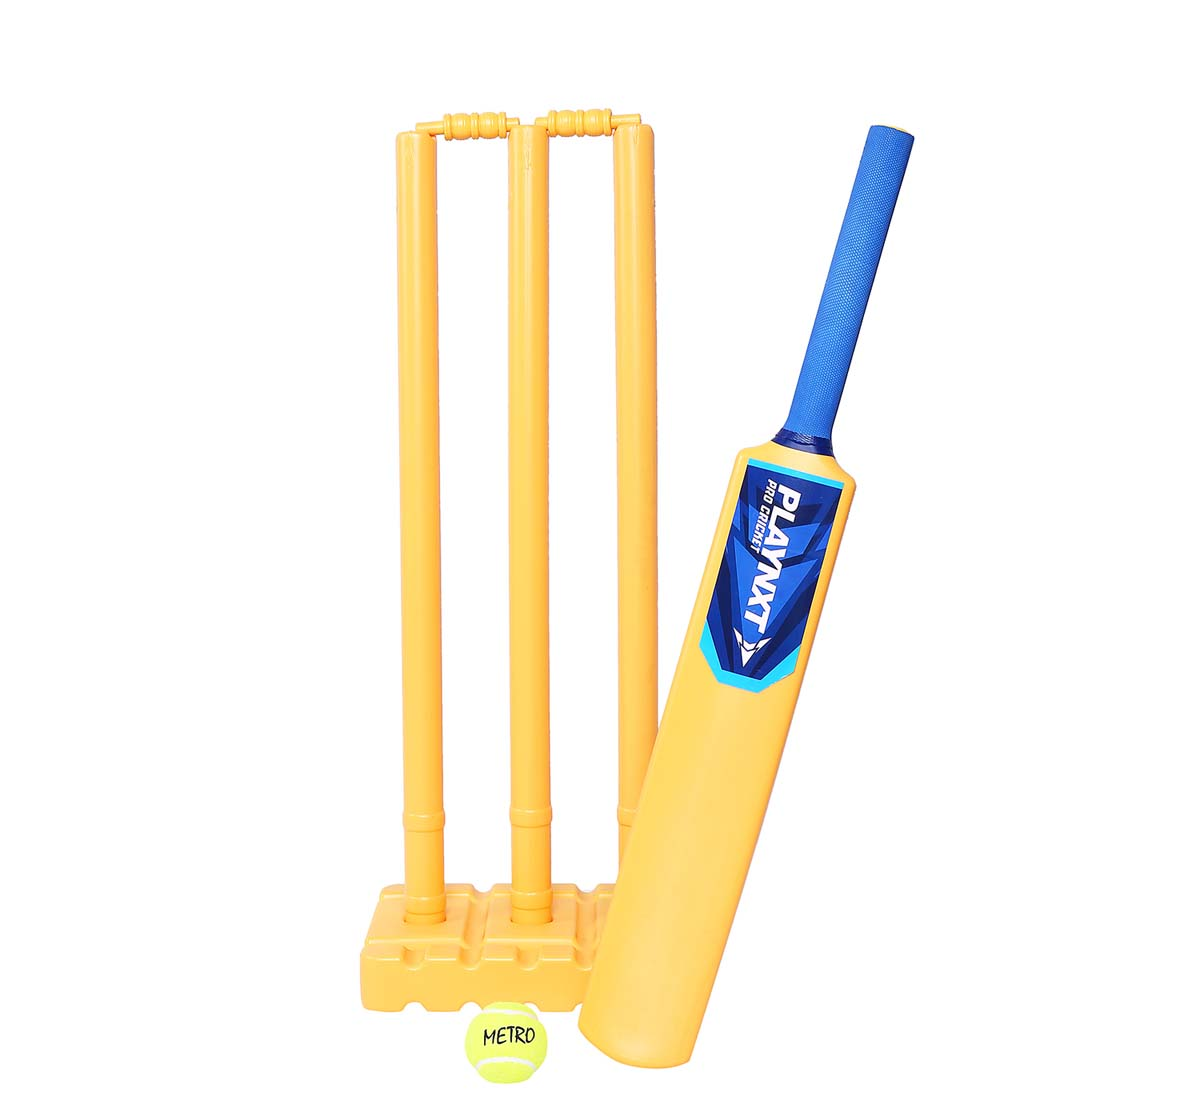 Playnxt | Playnxt Pro Cricket Set For Kids & Adults, 9Y+ (Ivory Yellow )